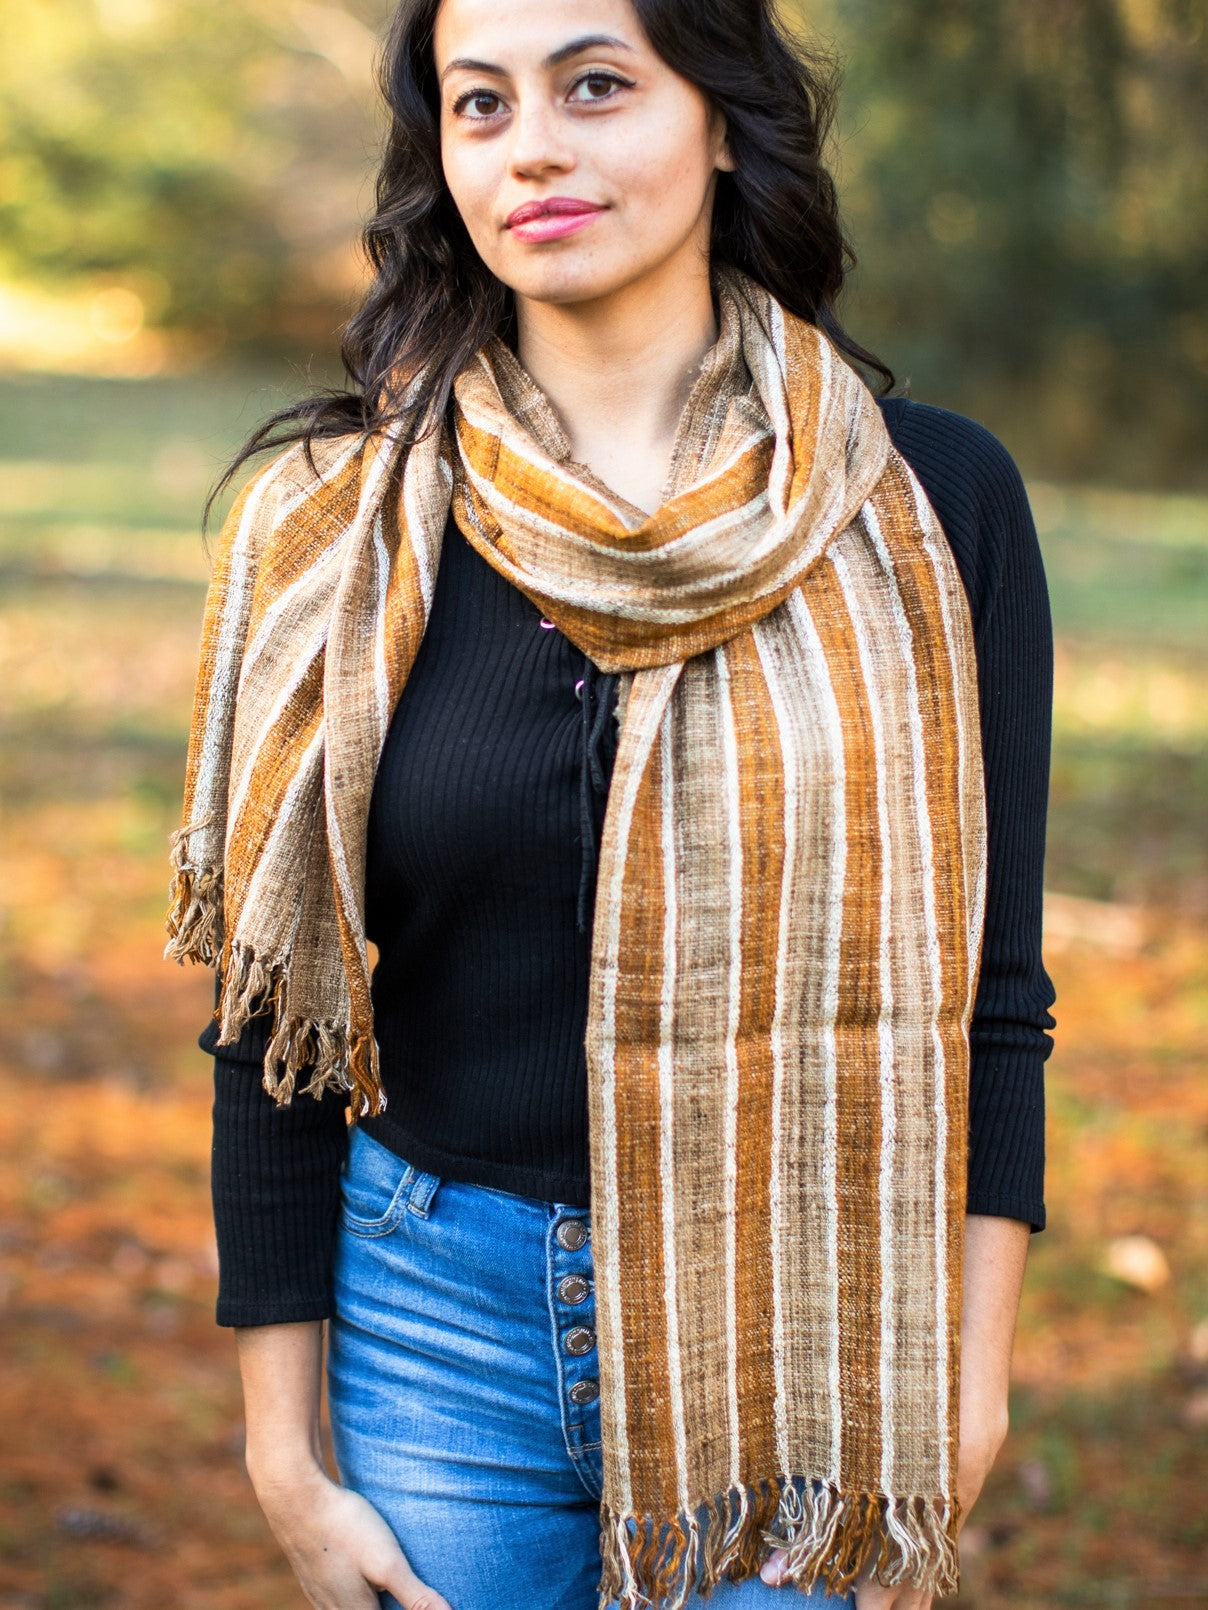 Hand-Made Natural Dyed Fair Trade Silk Scarf for Women or Men